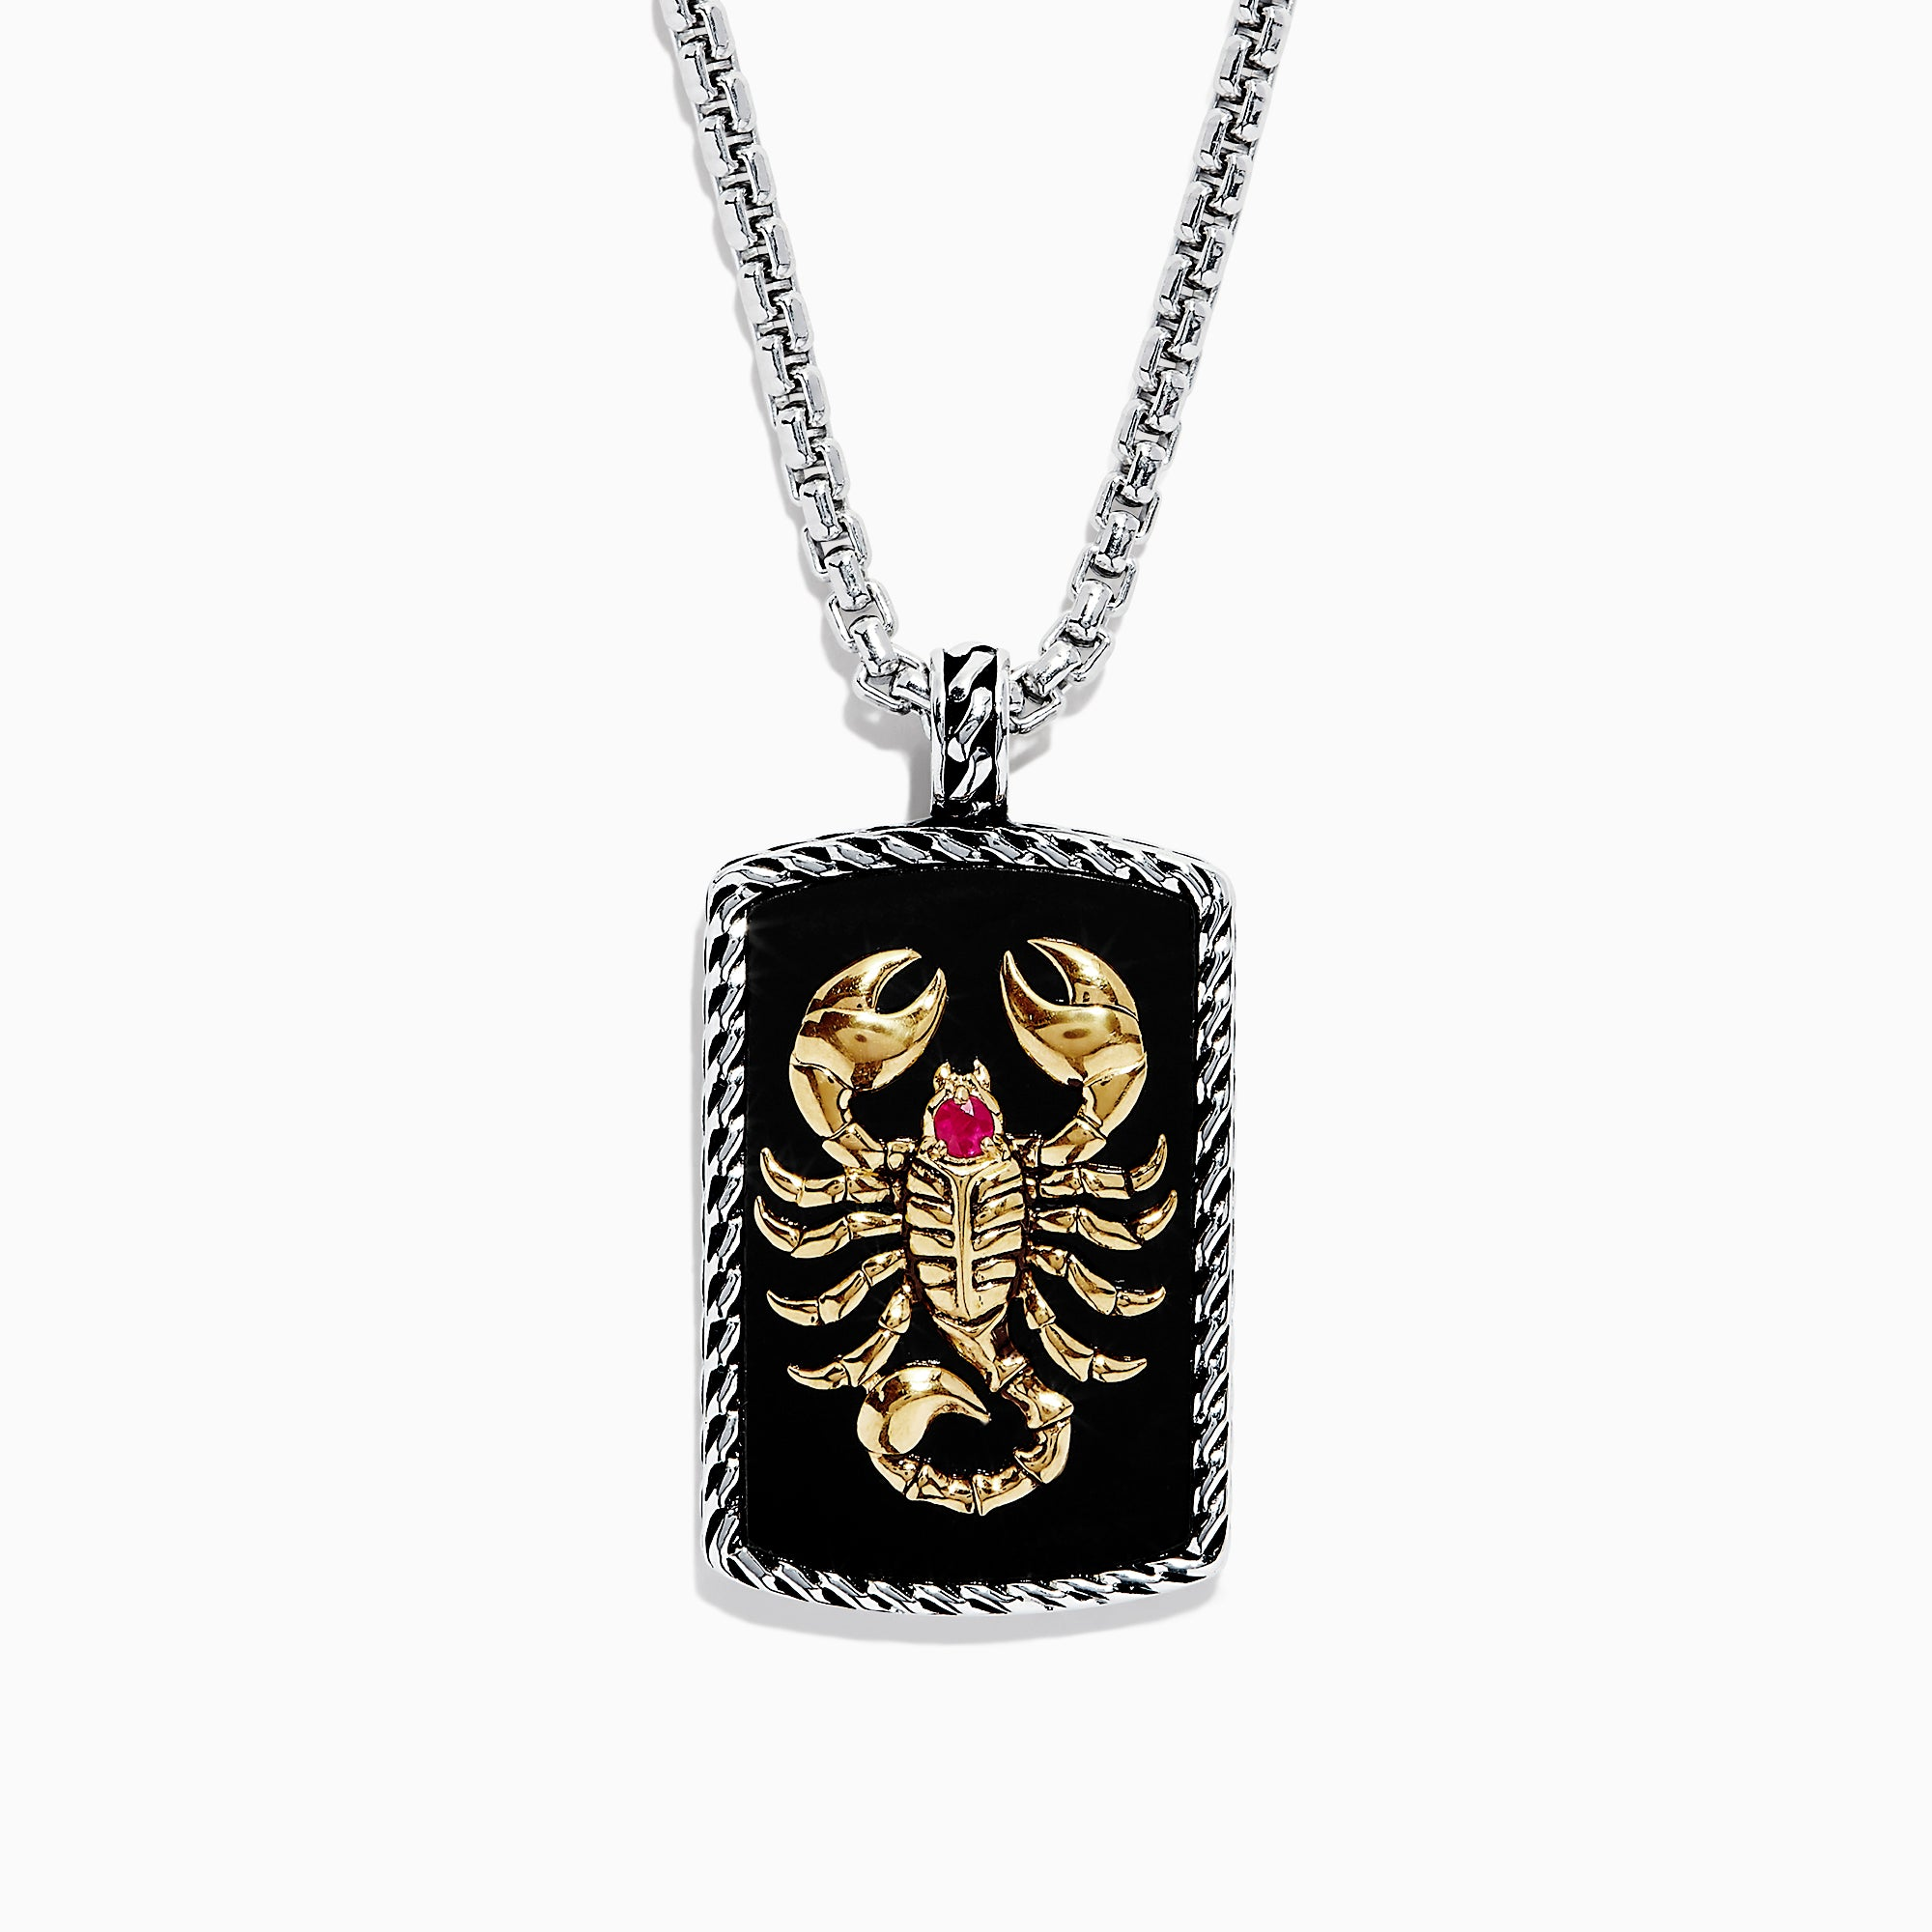 Effy Men's Silver & 14K Gold Plating Onyx & Ruby Scorpion Pendant, 16.50 TW